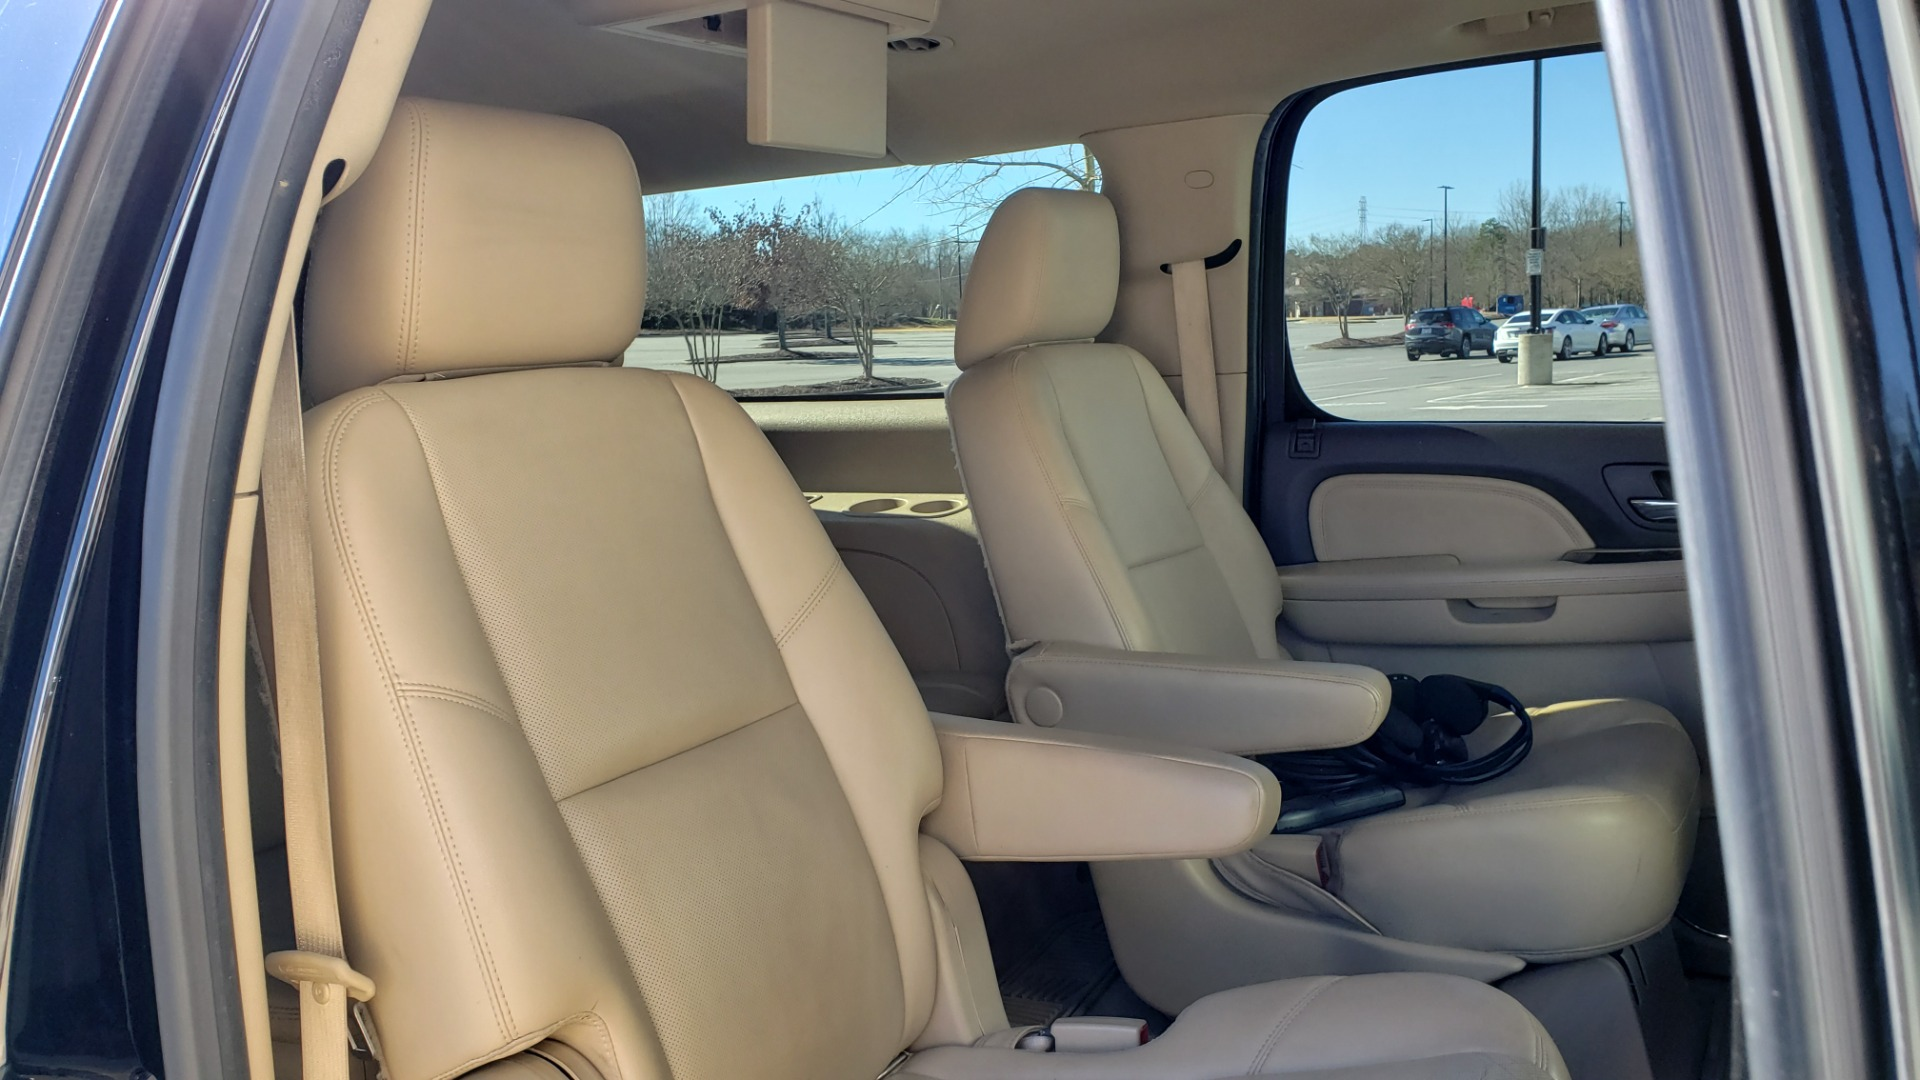 Used 2013 GMC YUKON XL DENALI / AWD / NAV / SUNROOF / 3-ROW / ENTERTAINMENT for sale Sold at Formula Imports in Charlotte NC 28227 71